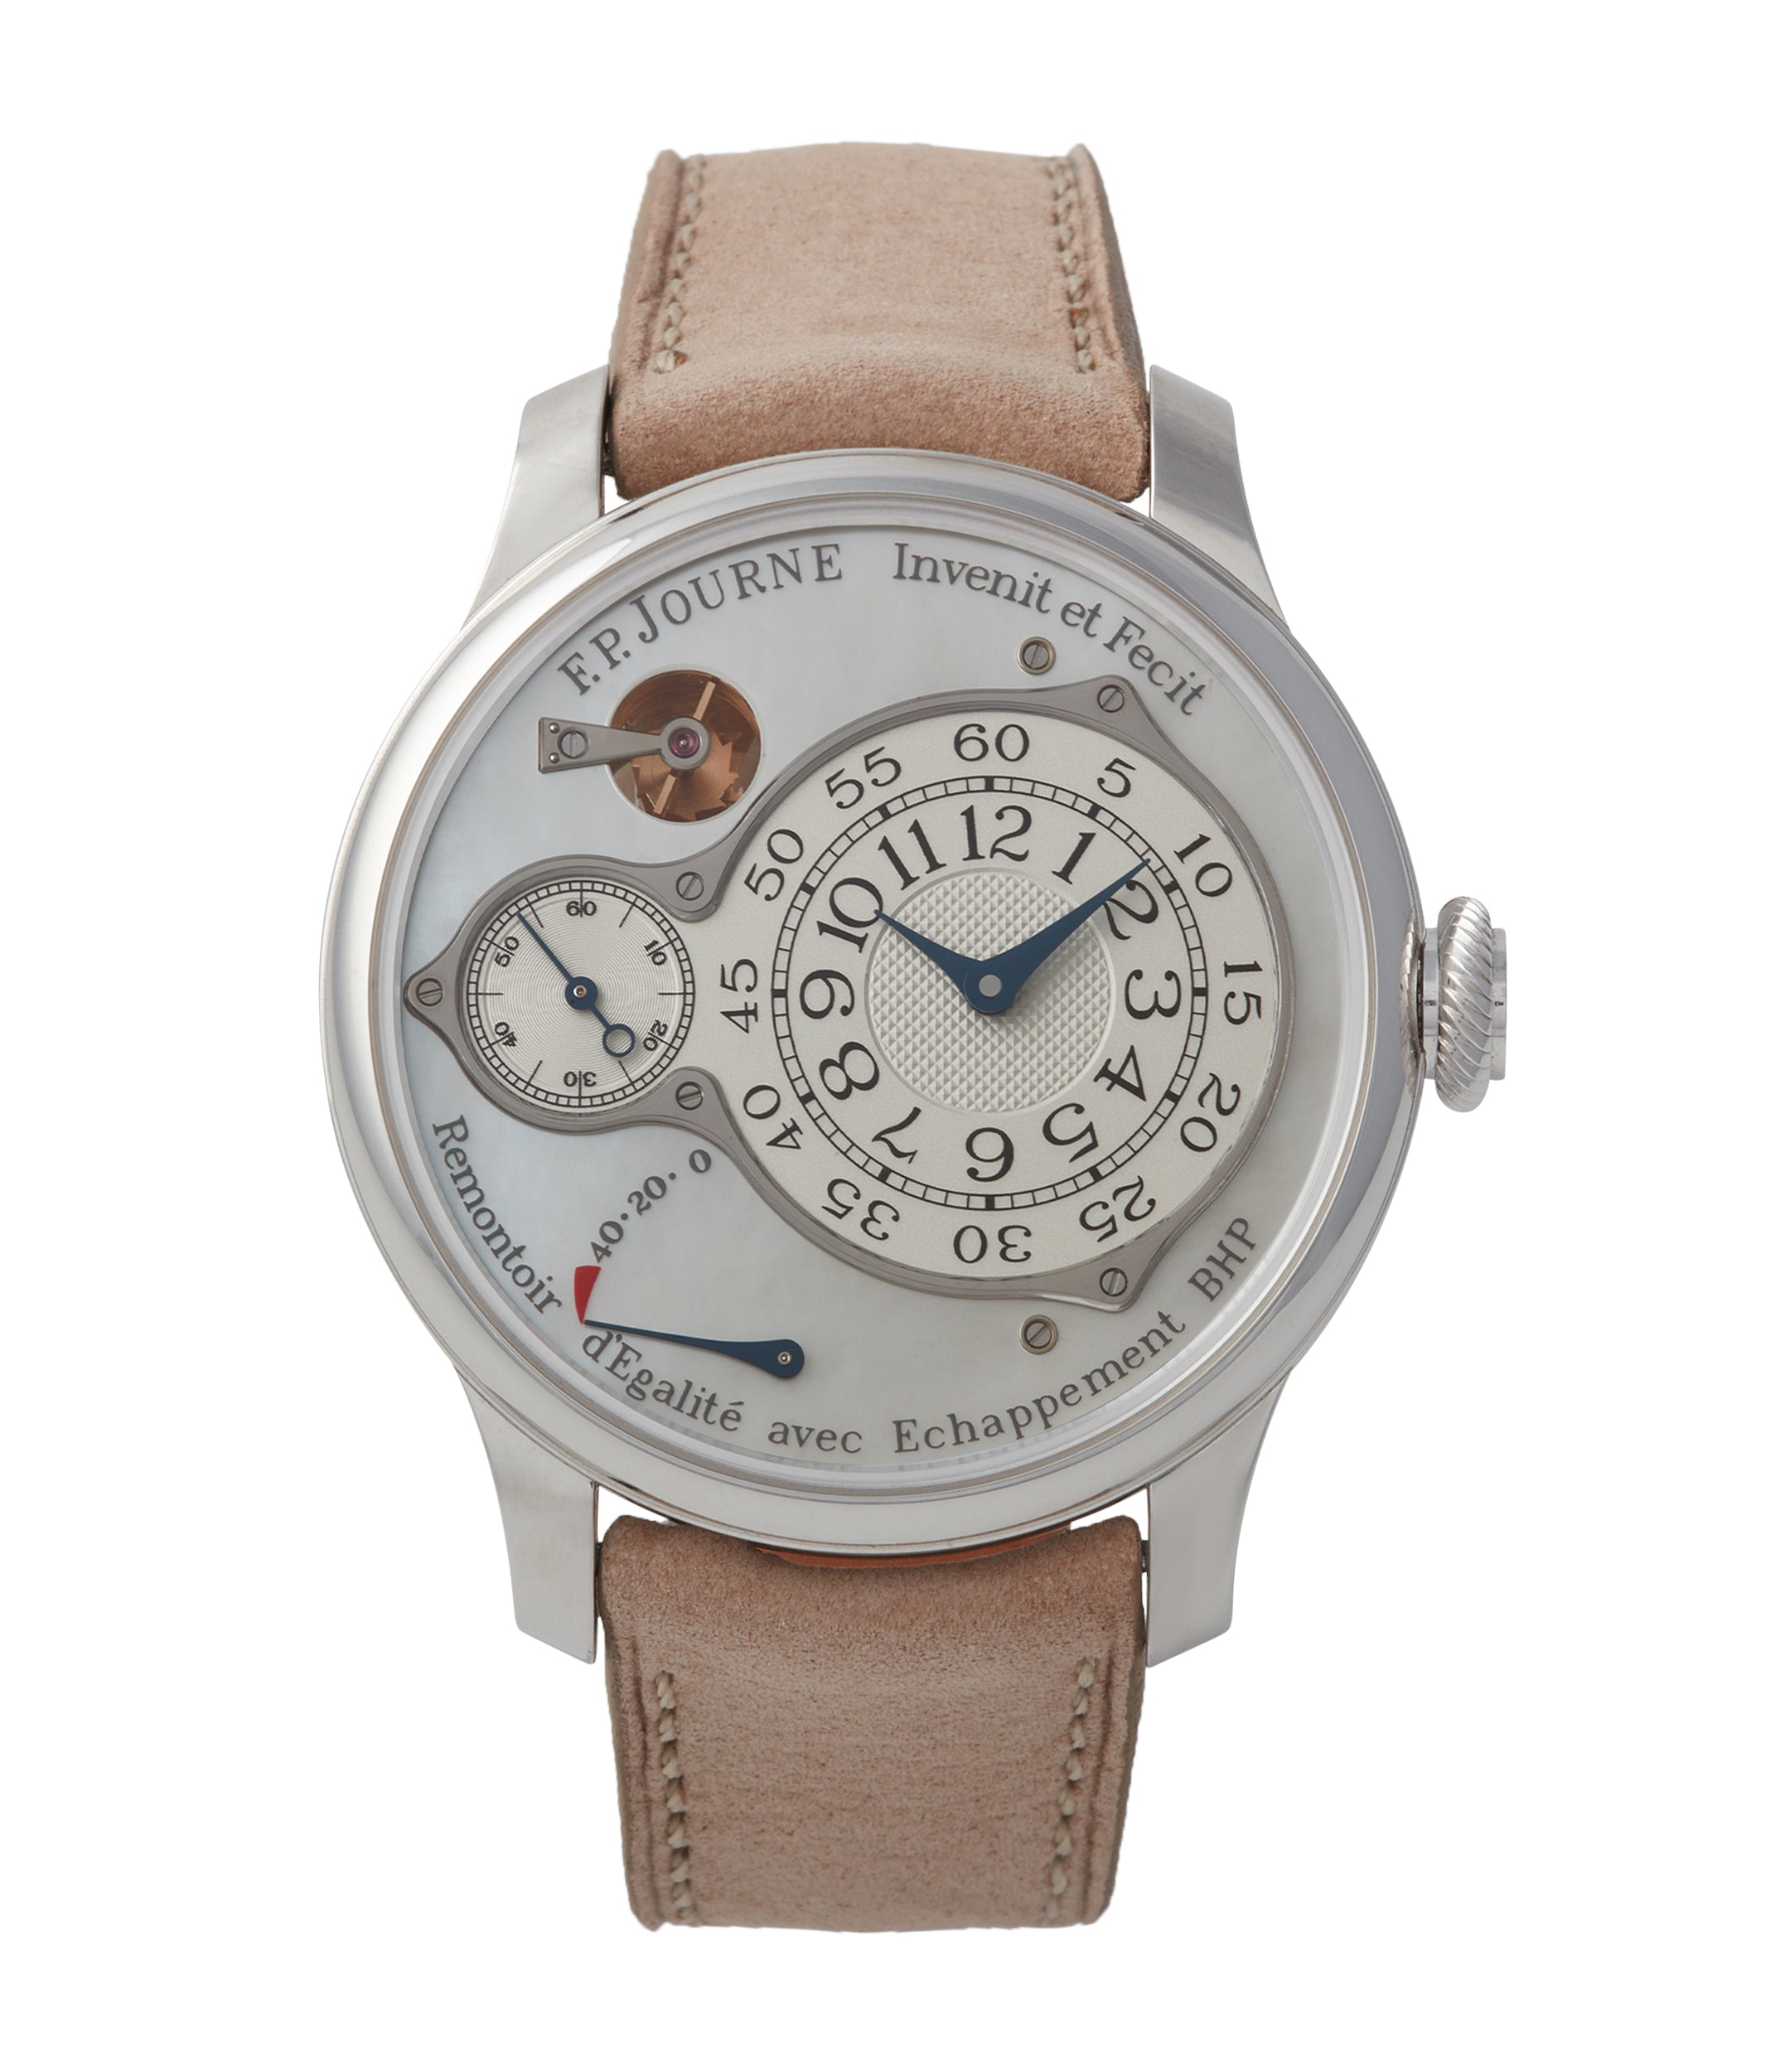 buy F. P. Journe Chronometre Optimum pearl dial platinum dress watch independent watchmaker for sale online A Collected Man London UK specialist rare watches